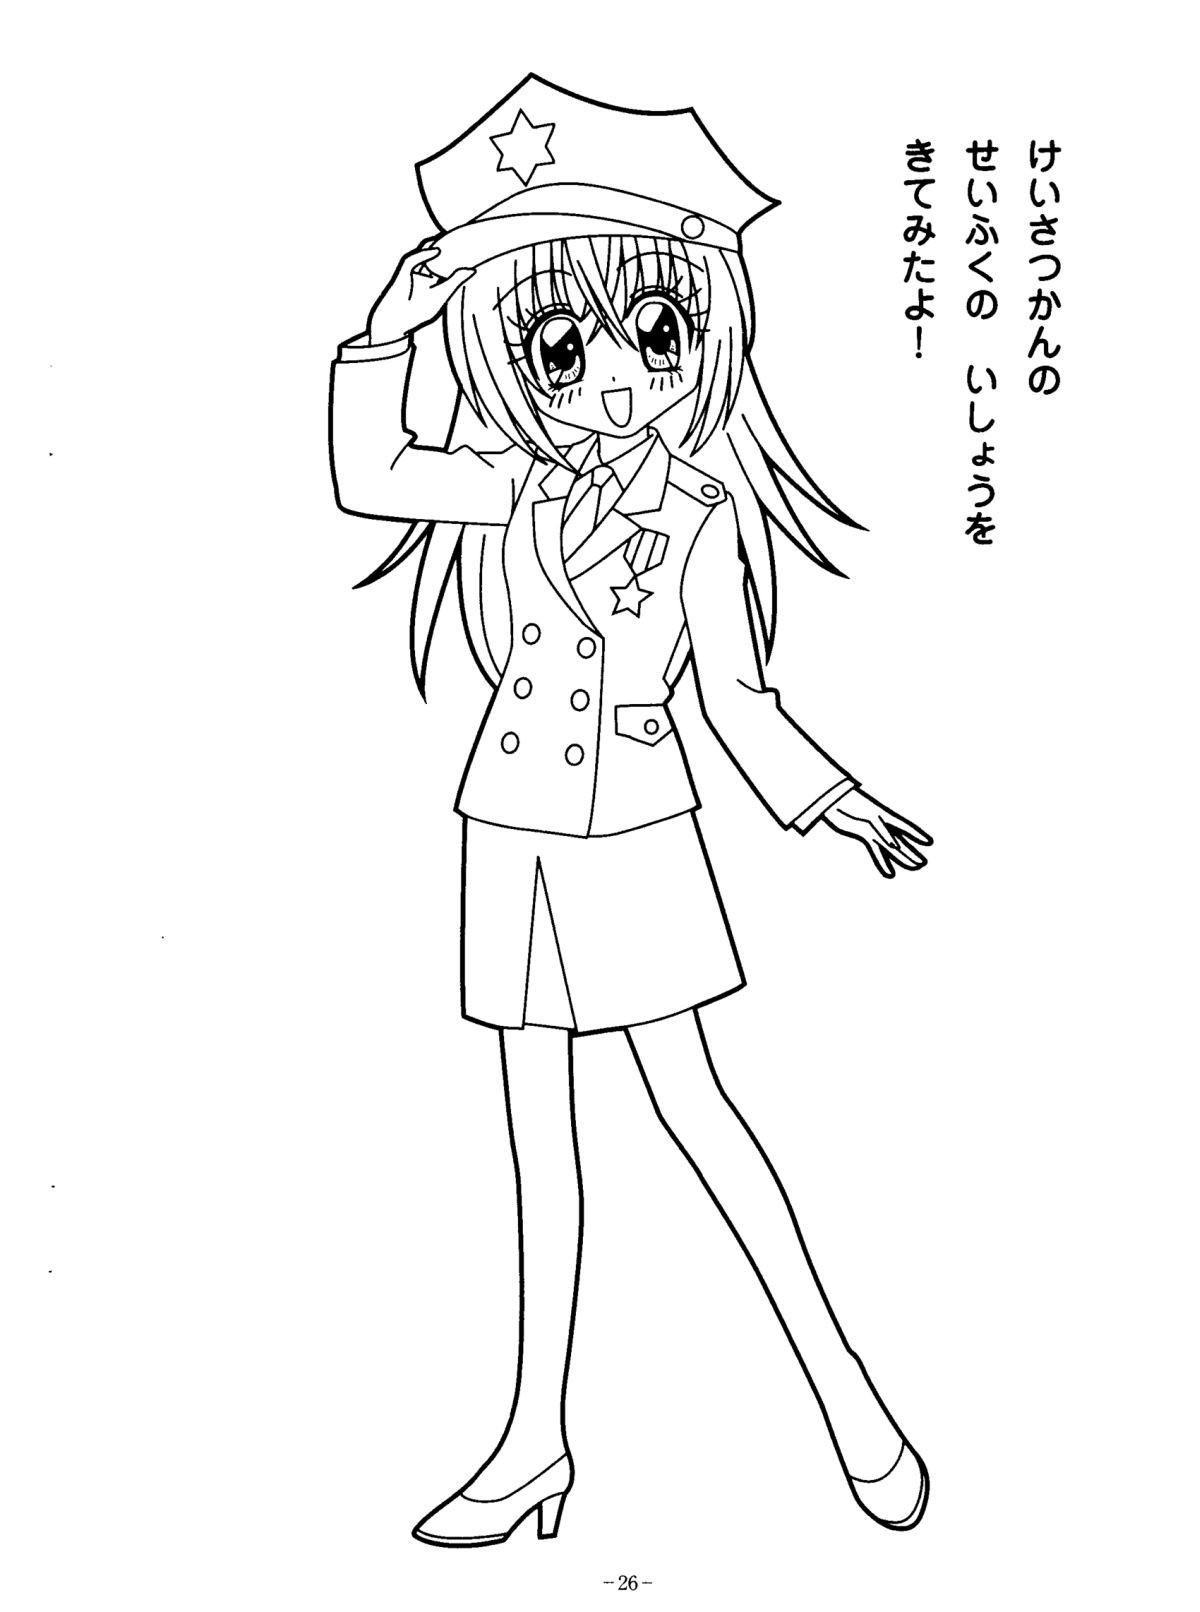 Anime School Girl Coloring Pages  anime school girl coloring page Google Search